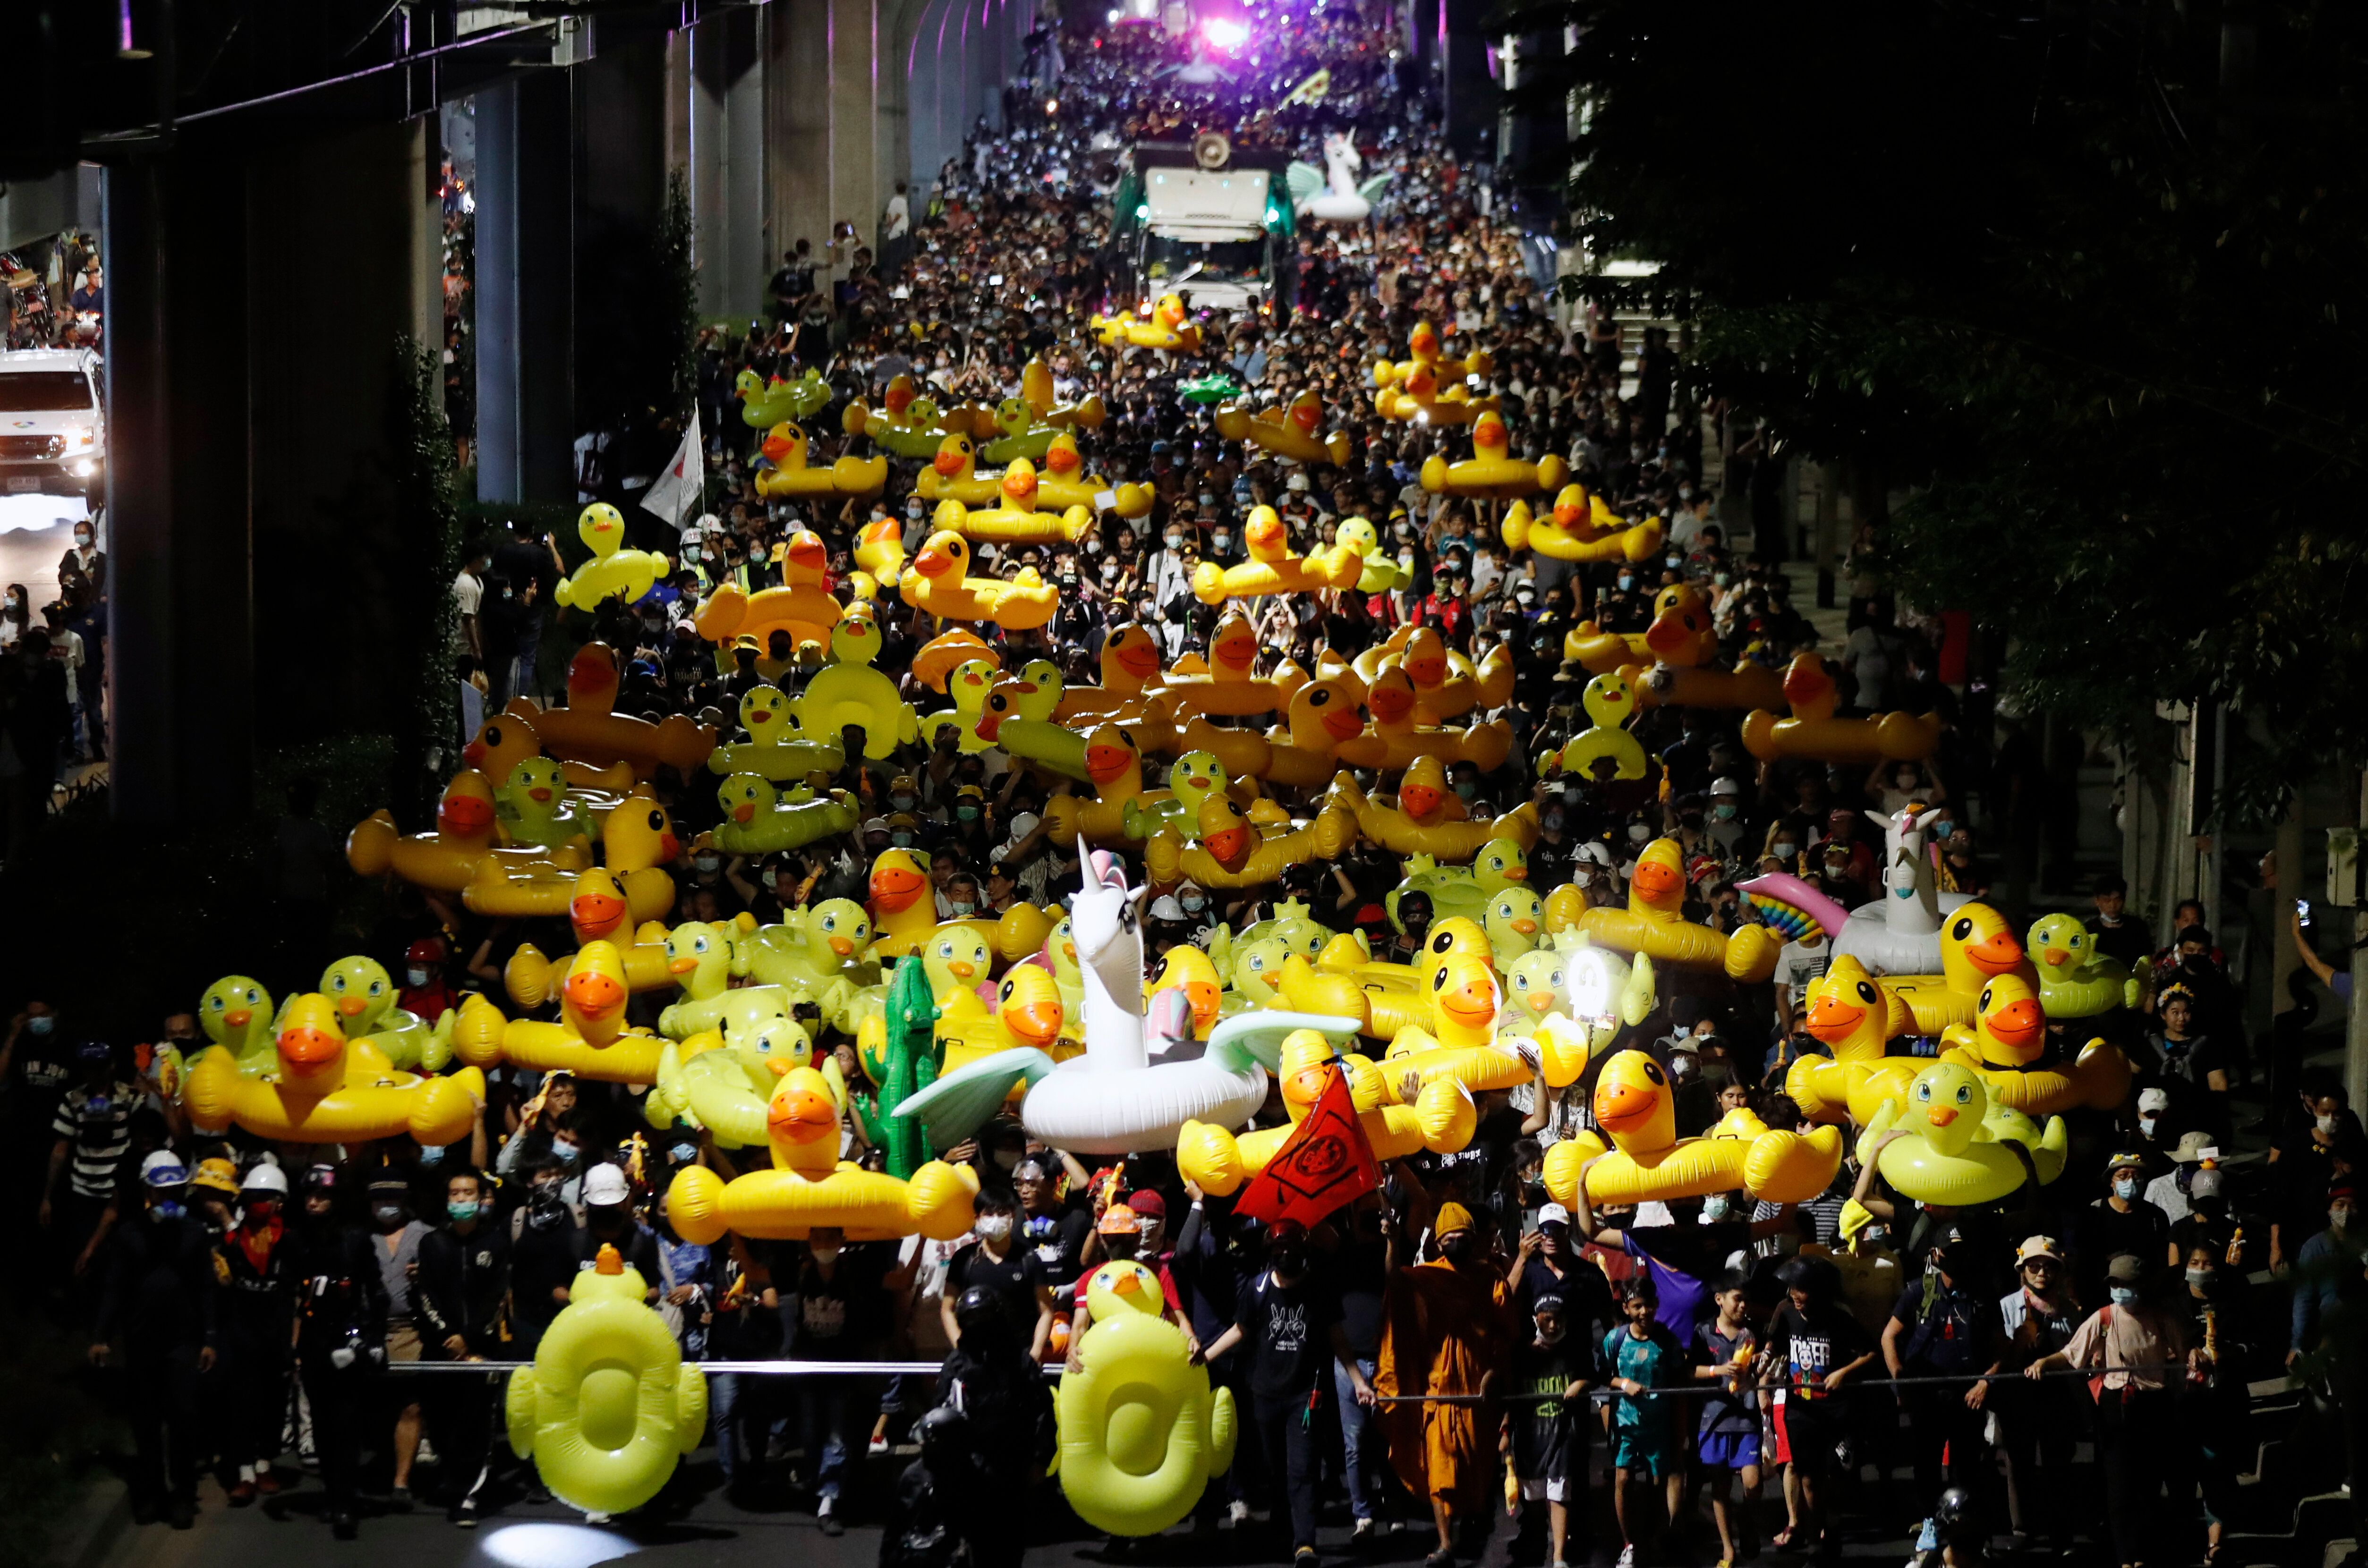 Protesters carry inflatable yellow ducks, which have become good-humored symbols of resistance during anti-government rallies